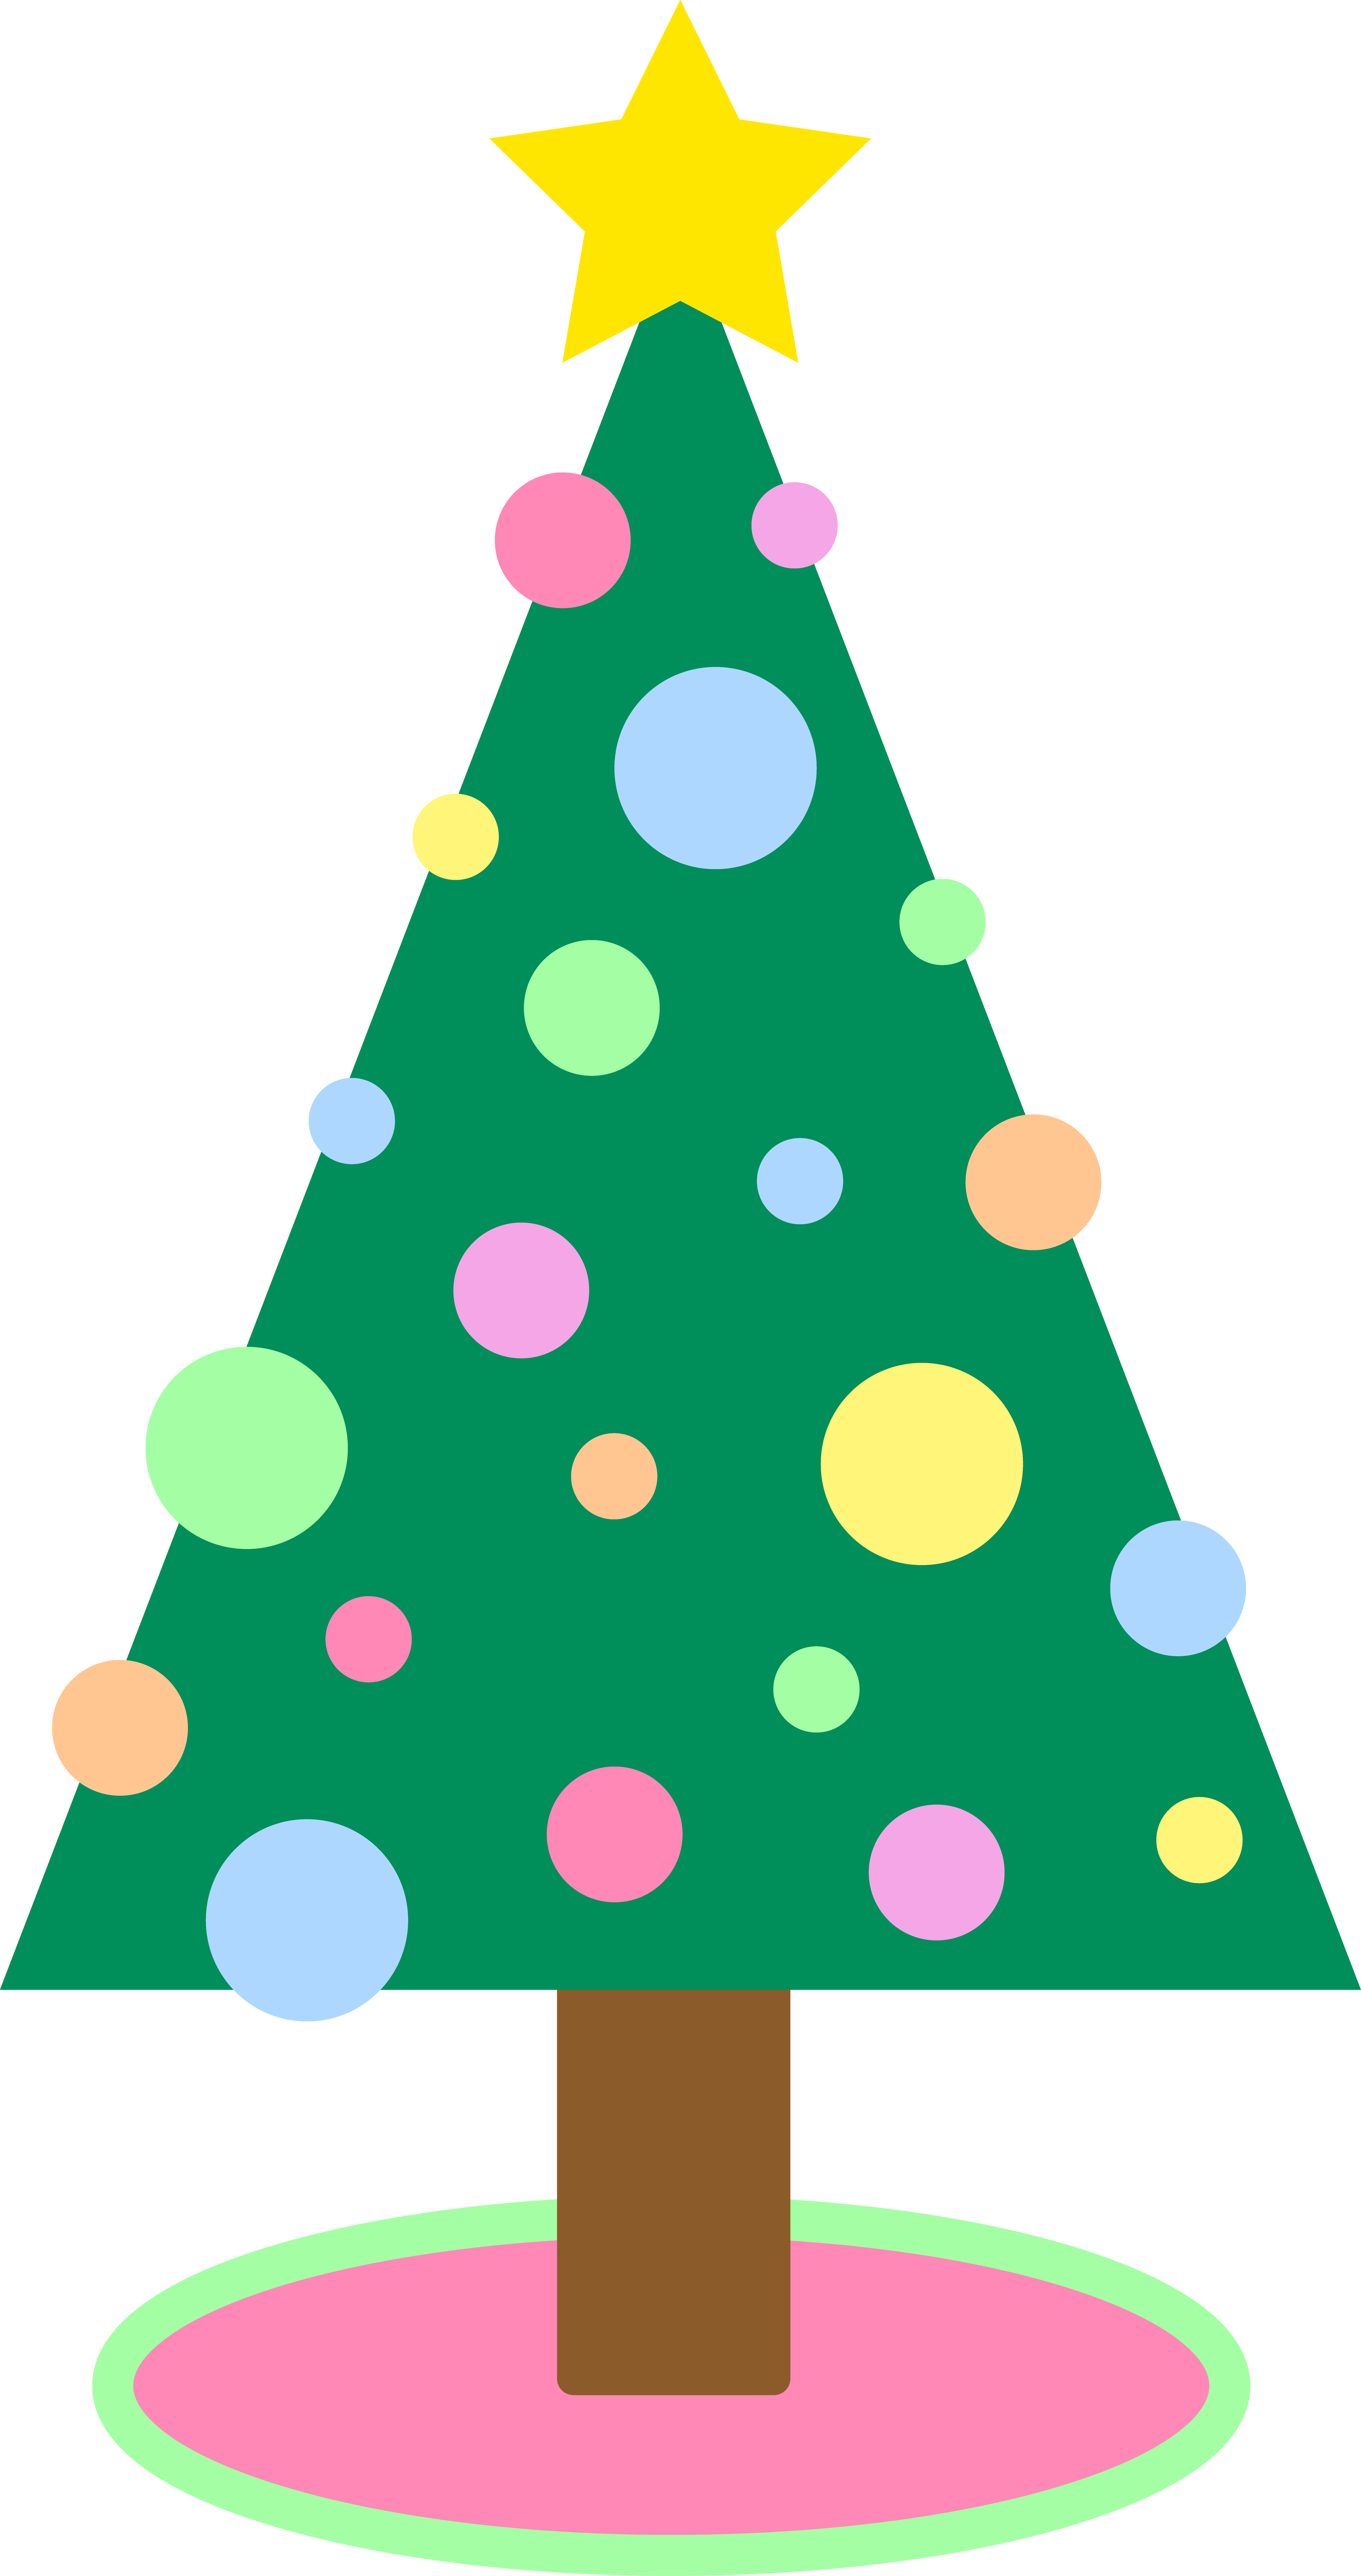 Cute christmas trees clipart.